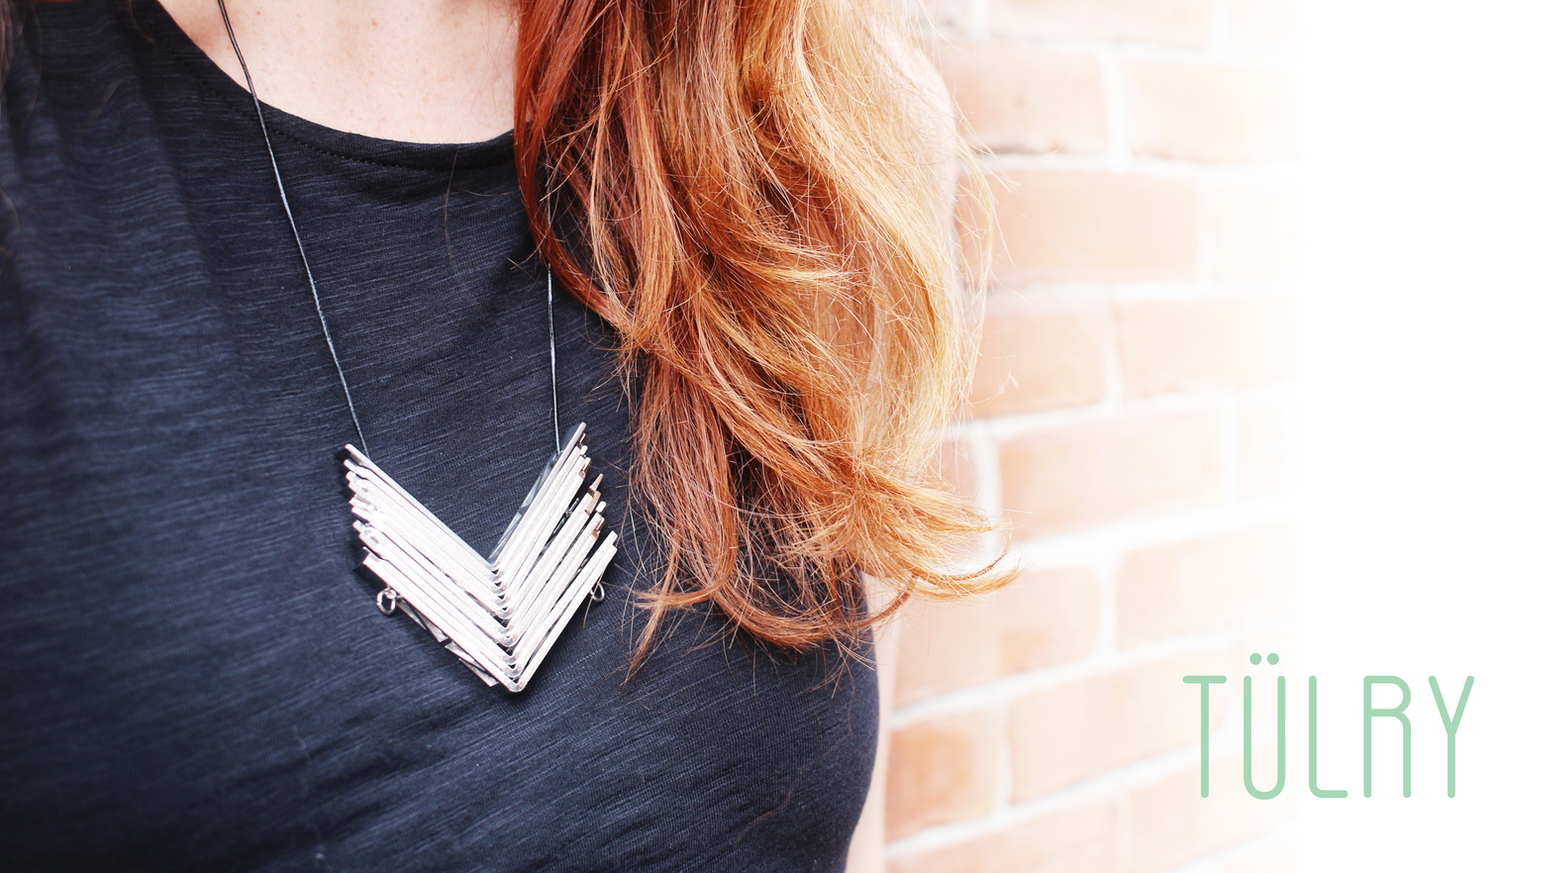 With up to 16 built-in tools, it's the most useful necklace you'll ever own.